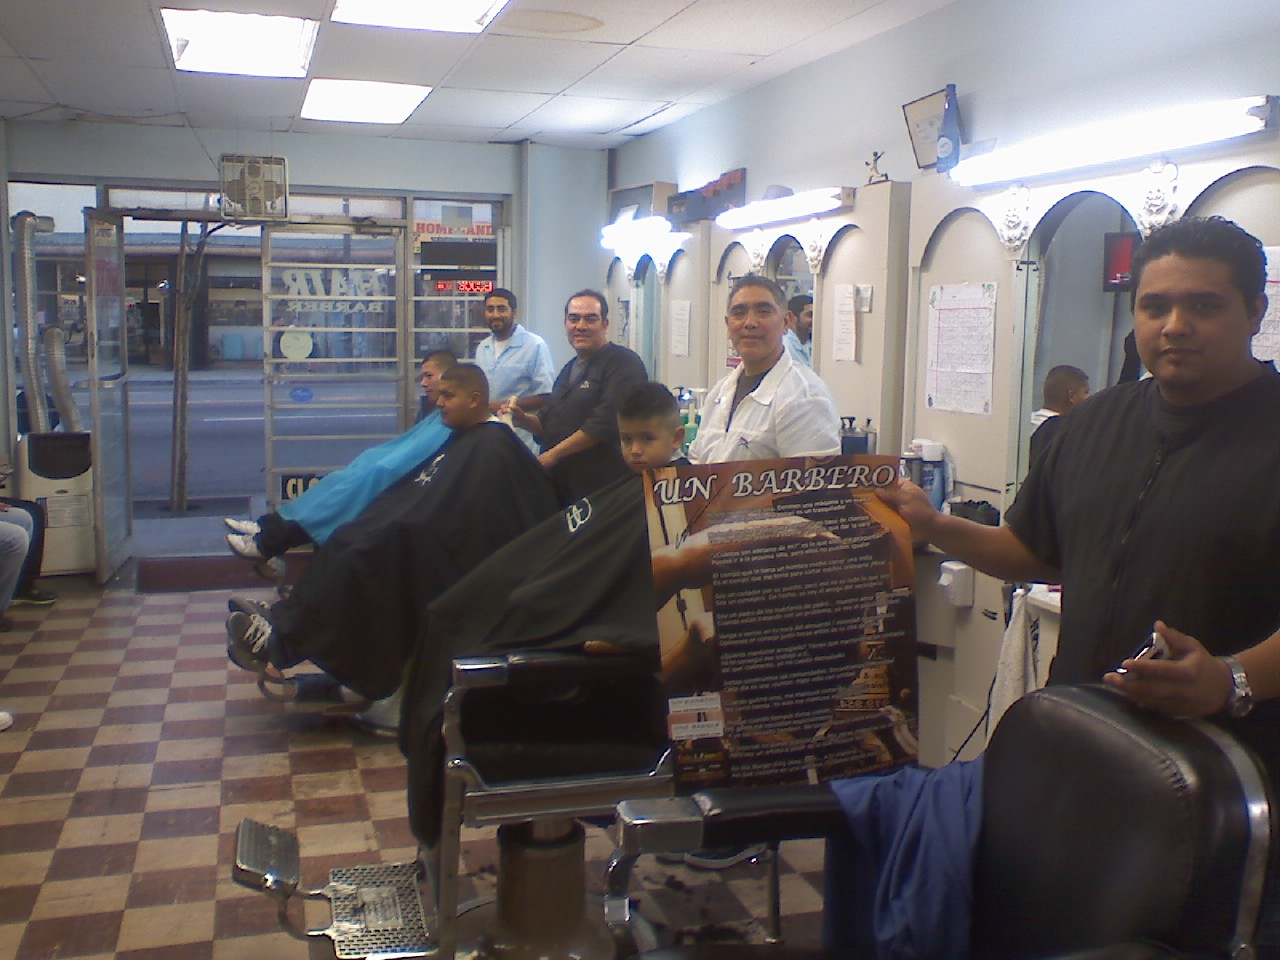 Barber Zone Sacramento : ONE BARBER > California Barber Shops in CA - hair shops including ...